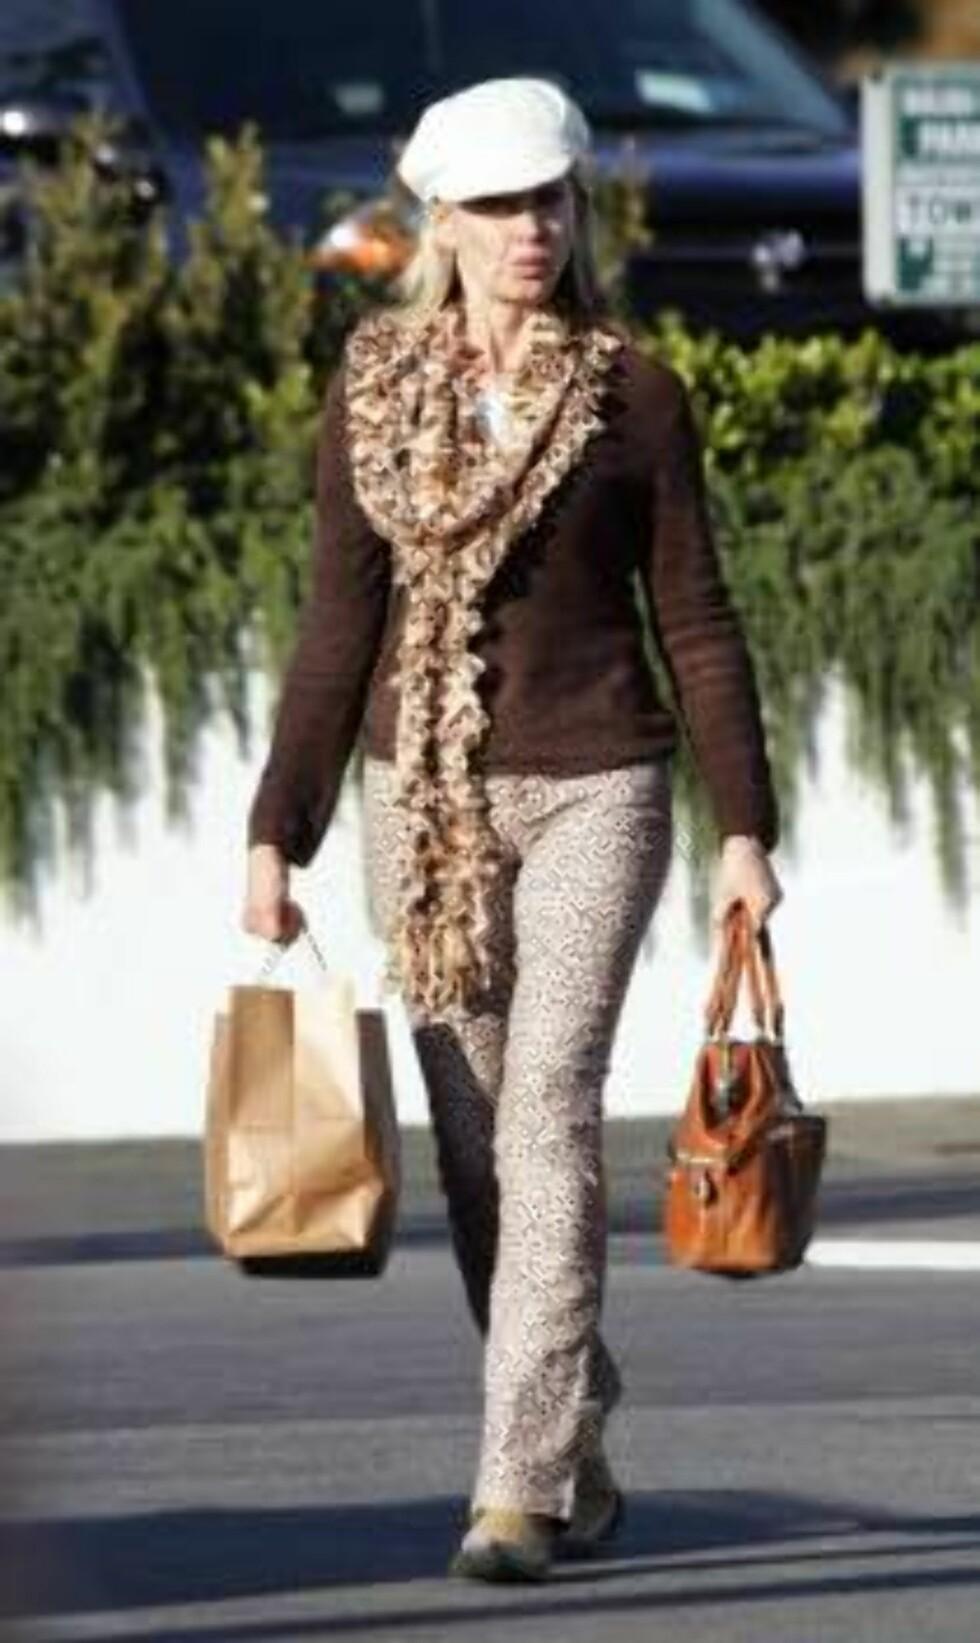 Code:X17XX8-Frederik Madison, California, USA, 05.12.2004: Olivia Newton John does some Christmas shopping in Malibu.  Dressed in leopard print pants, boots, and a fluffy scarf, the Aussie actress-singer also picked up some sunglasses for herself. All Ov Foto: All Over Press